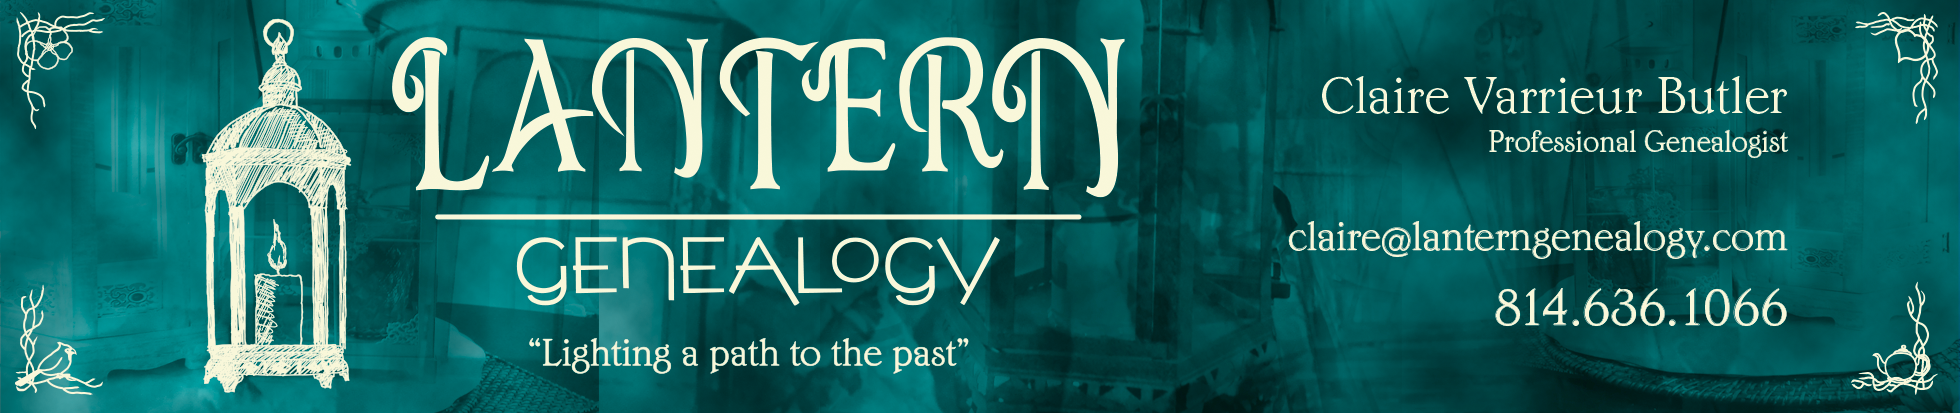 Need Help With Your Research? | Lantern Genealogical